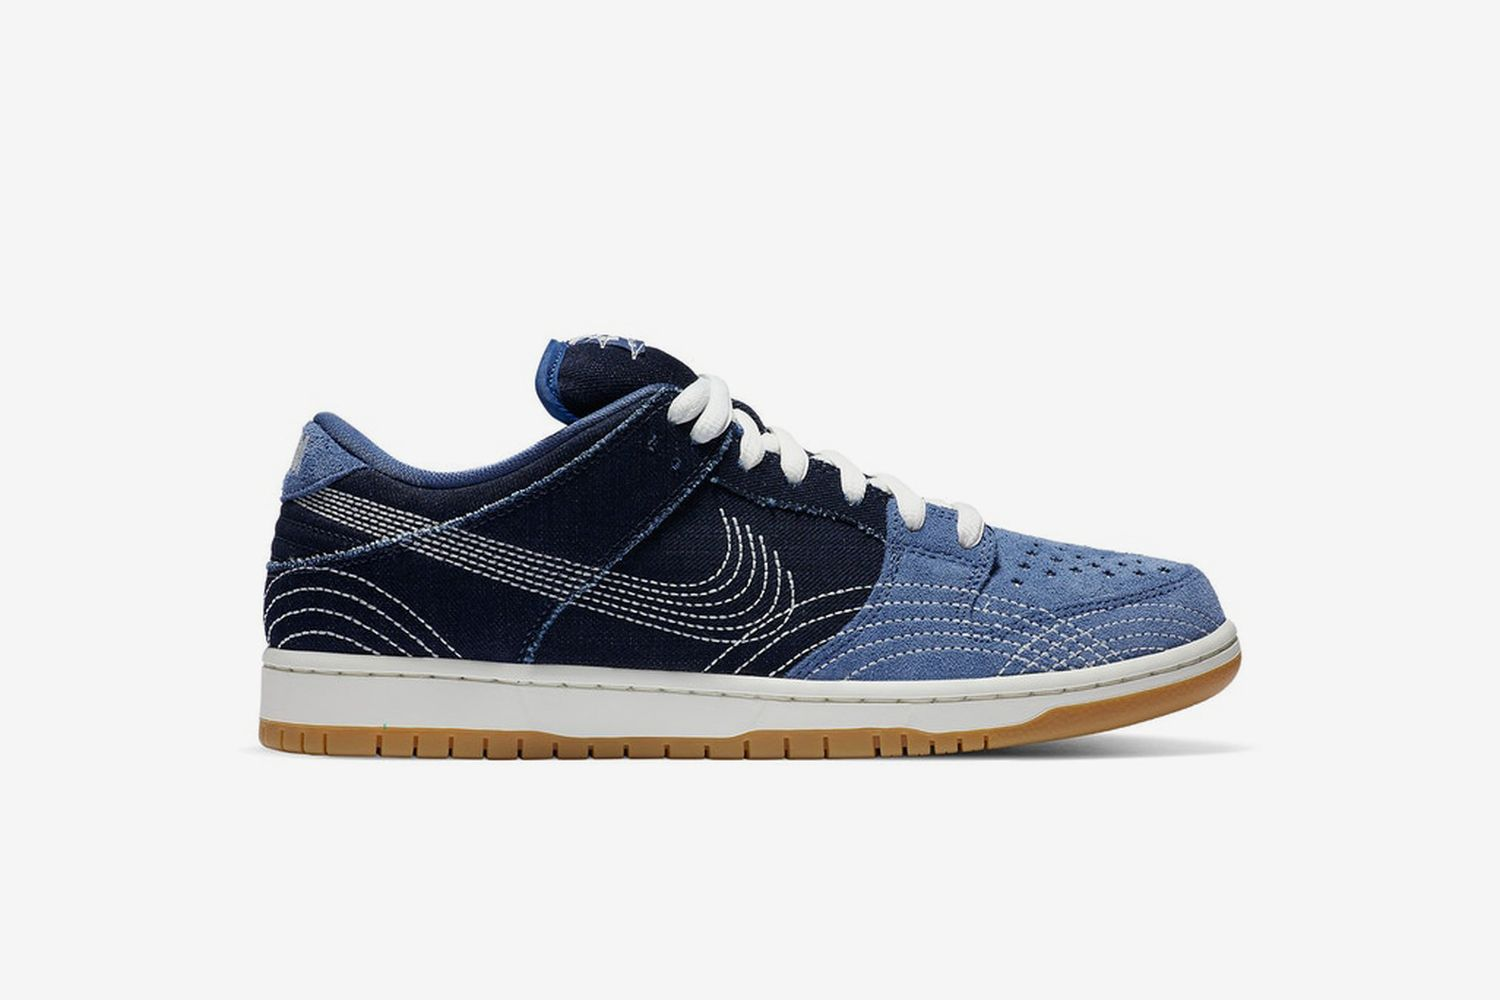 SB Dunk Low Denim Sashiko